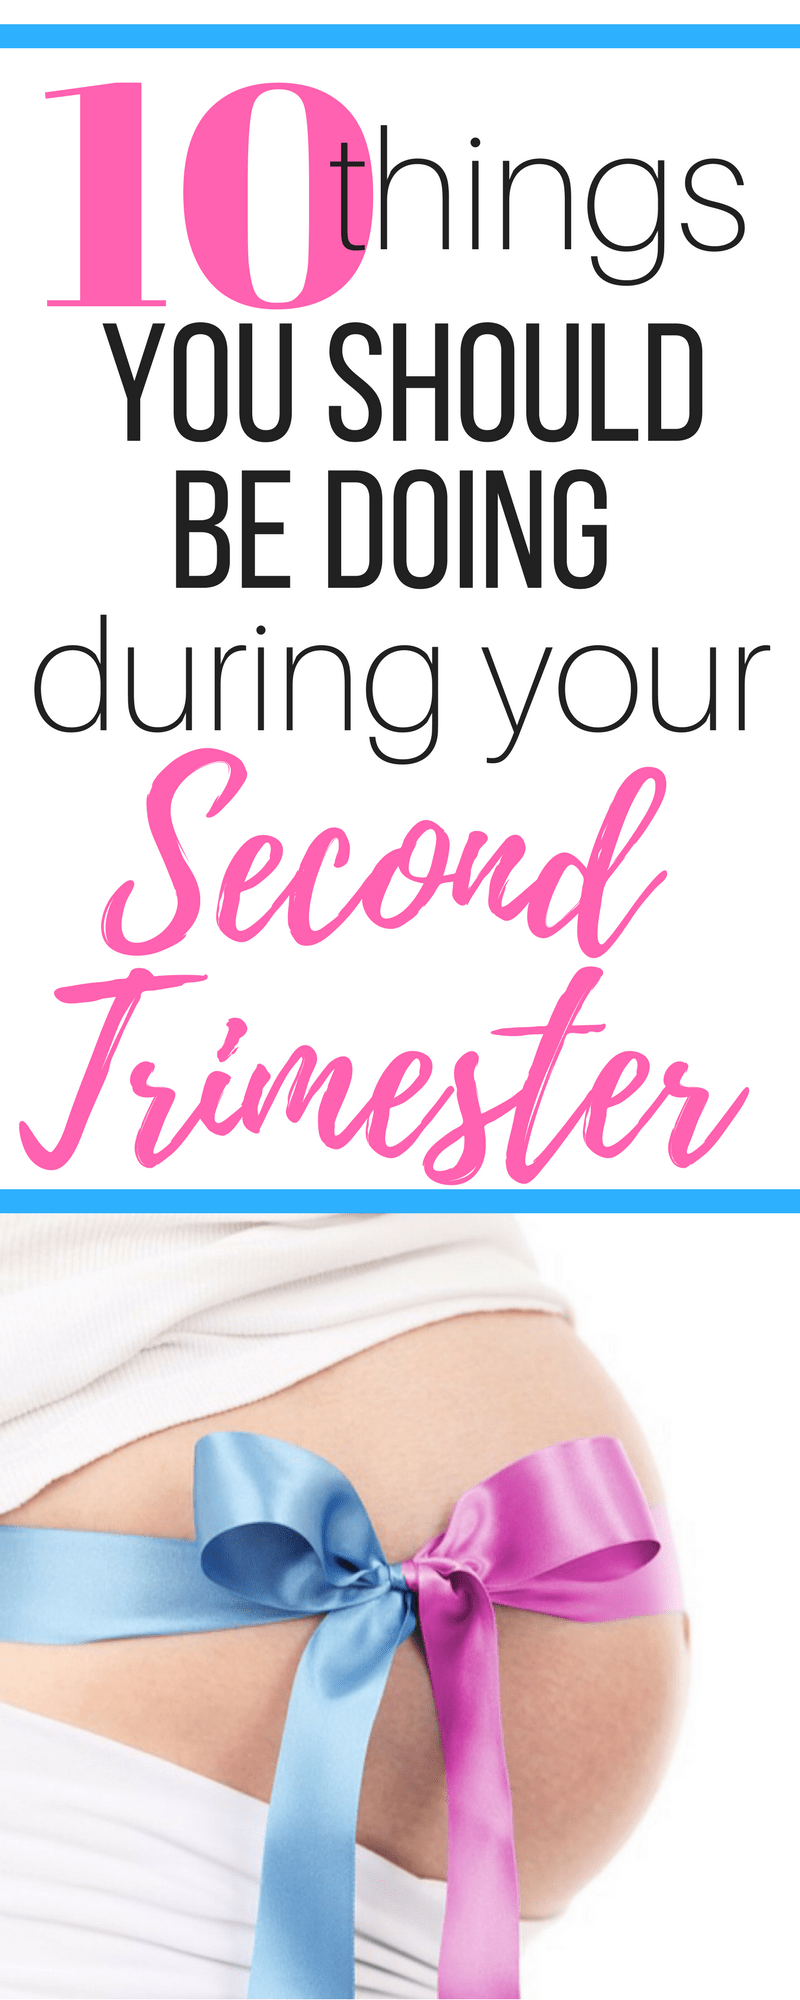 Preparing for baby during pregnancy tips: Did you survive the first trimester of pregnancy! Congratulations! Welcome to the second trimester, or weeks 14-27! Check out this list of 10 things you should be doing during your second trimester to prepare for your baby!